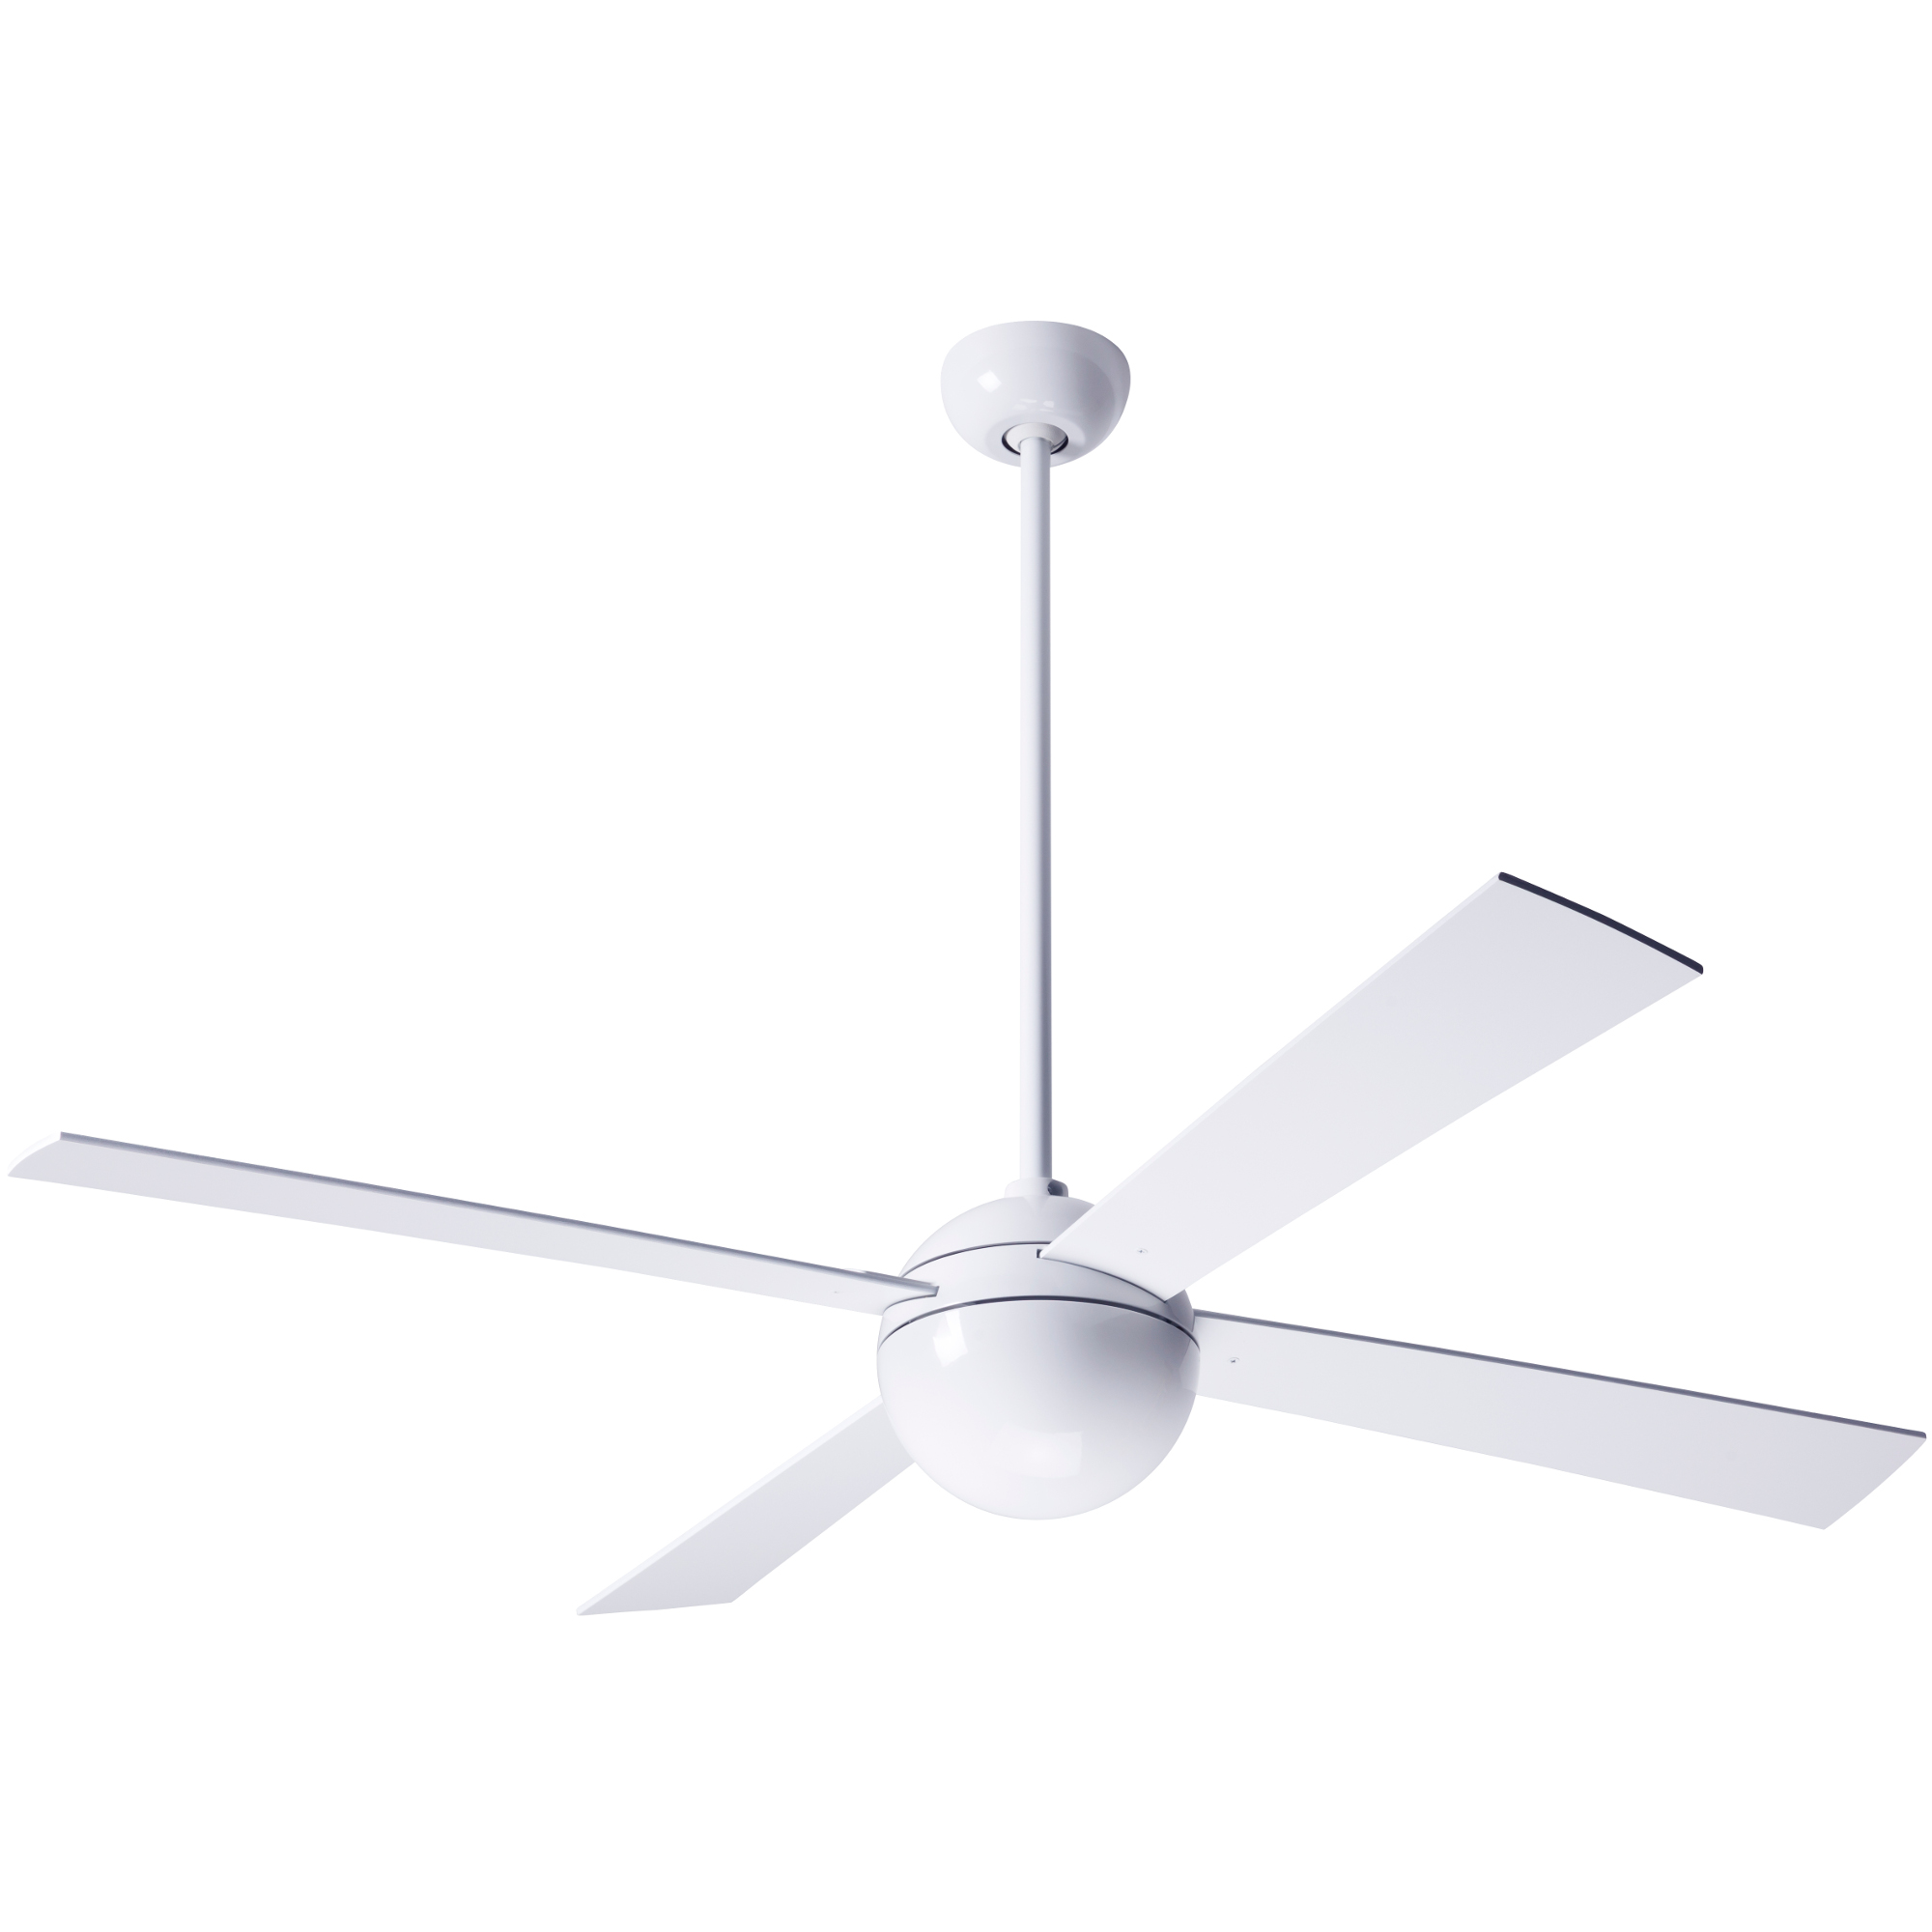 Ball Ceiling Fan No Light By Modern Co Bal Gw 42 Wh Nl 003